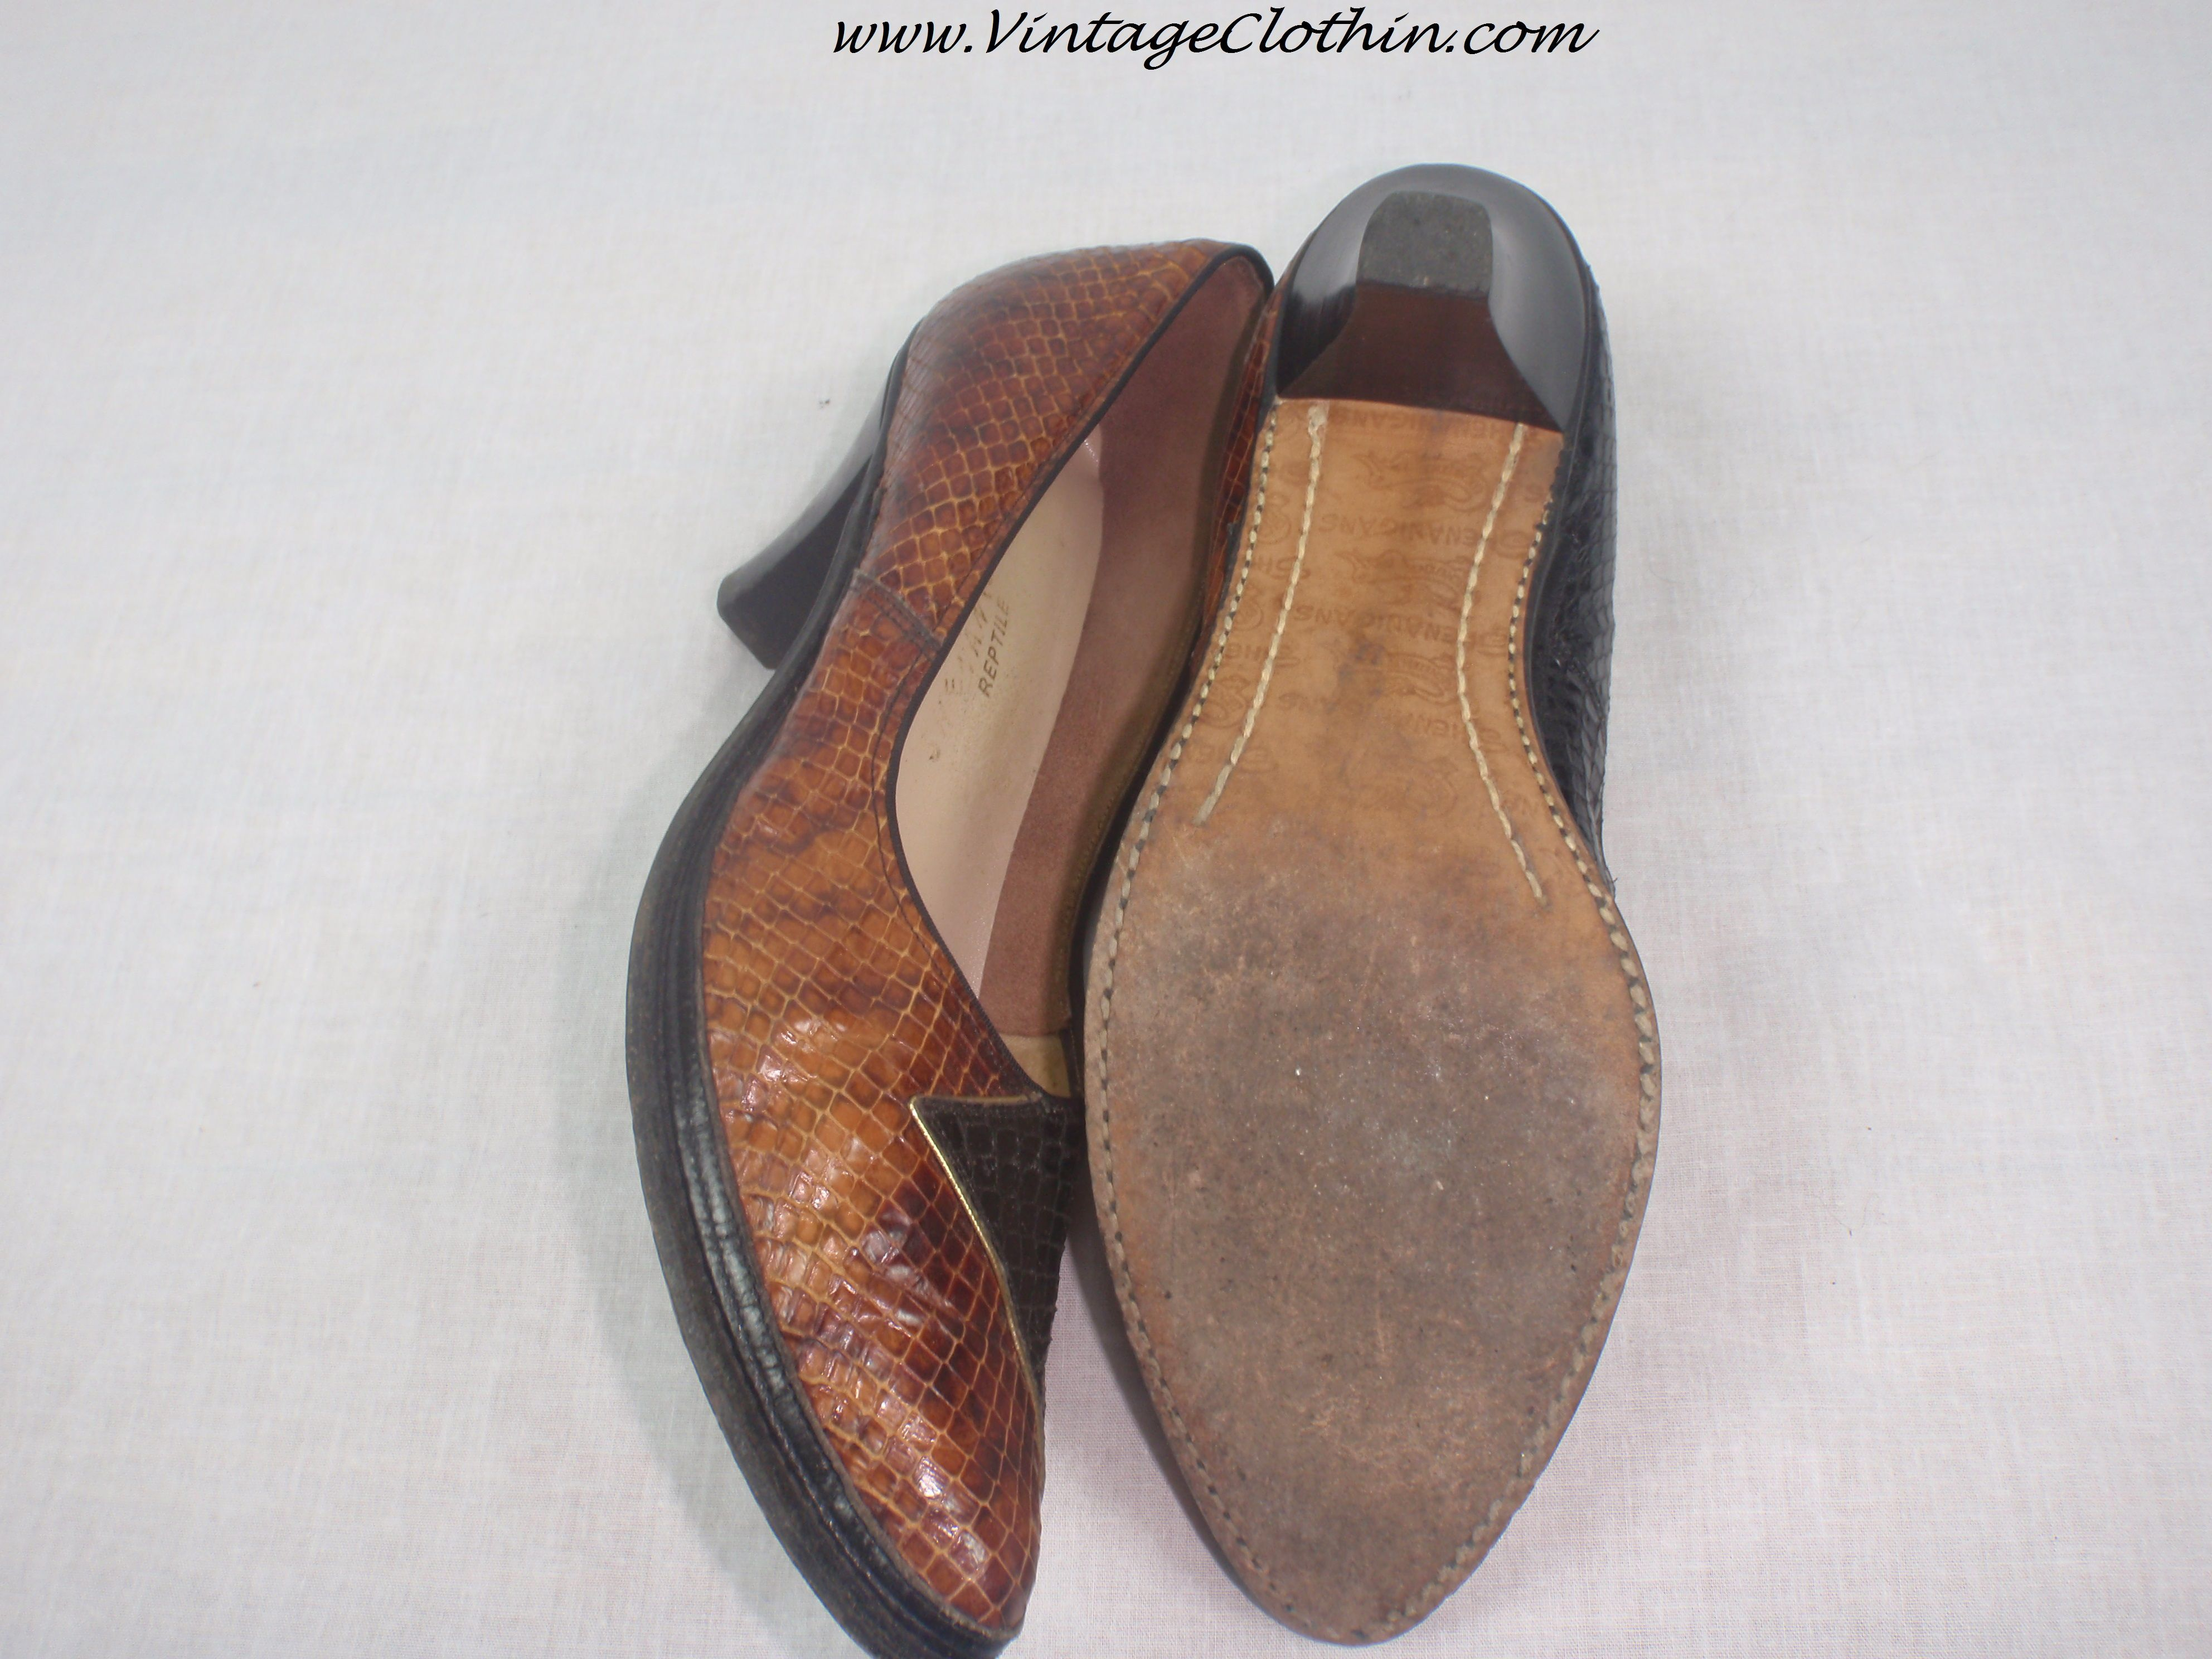 3859329f82337 Pin by Vintageclothin.com on 1950s Vintage Fashion | 1950s shoes ...